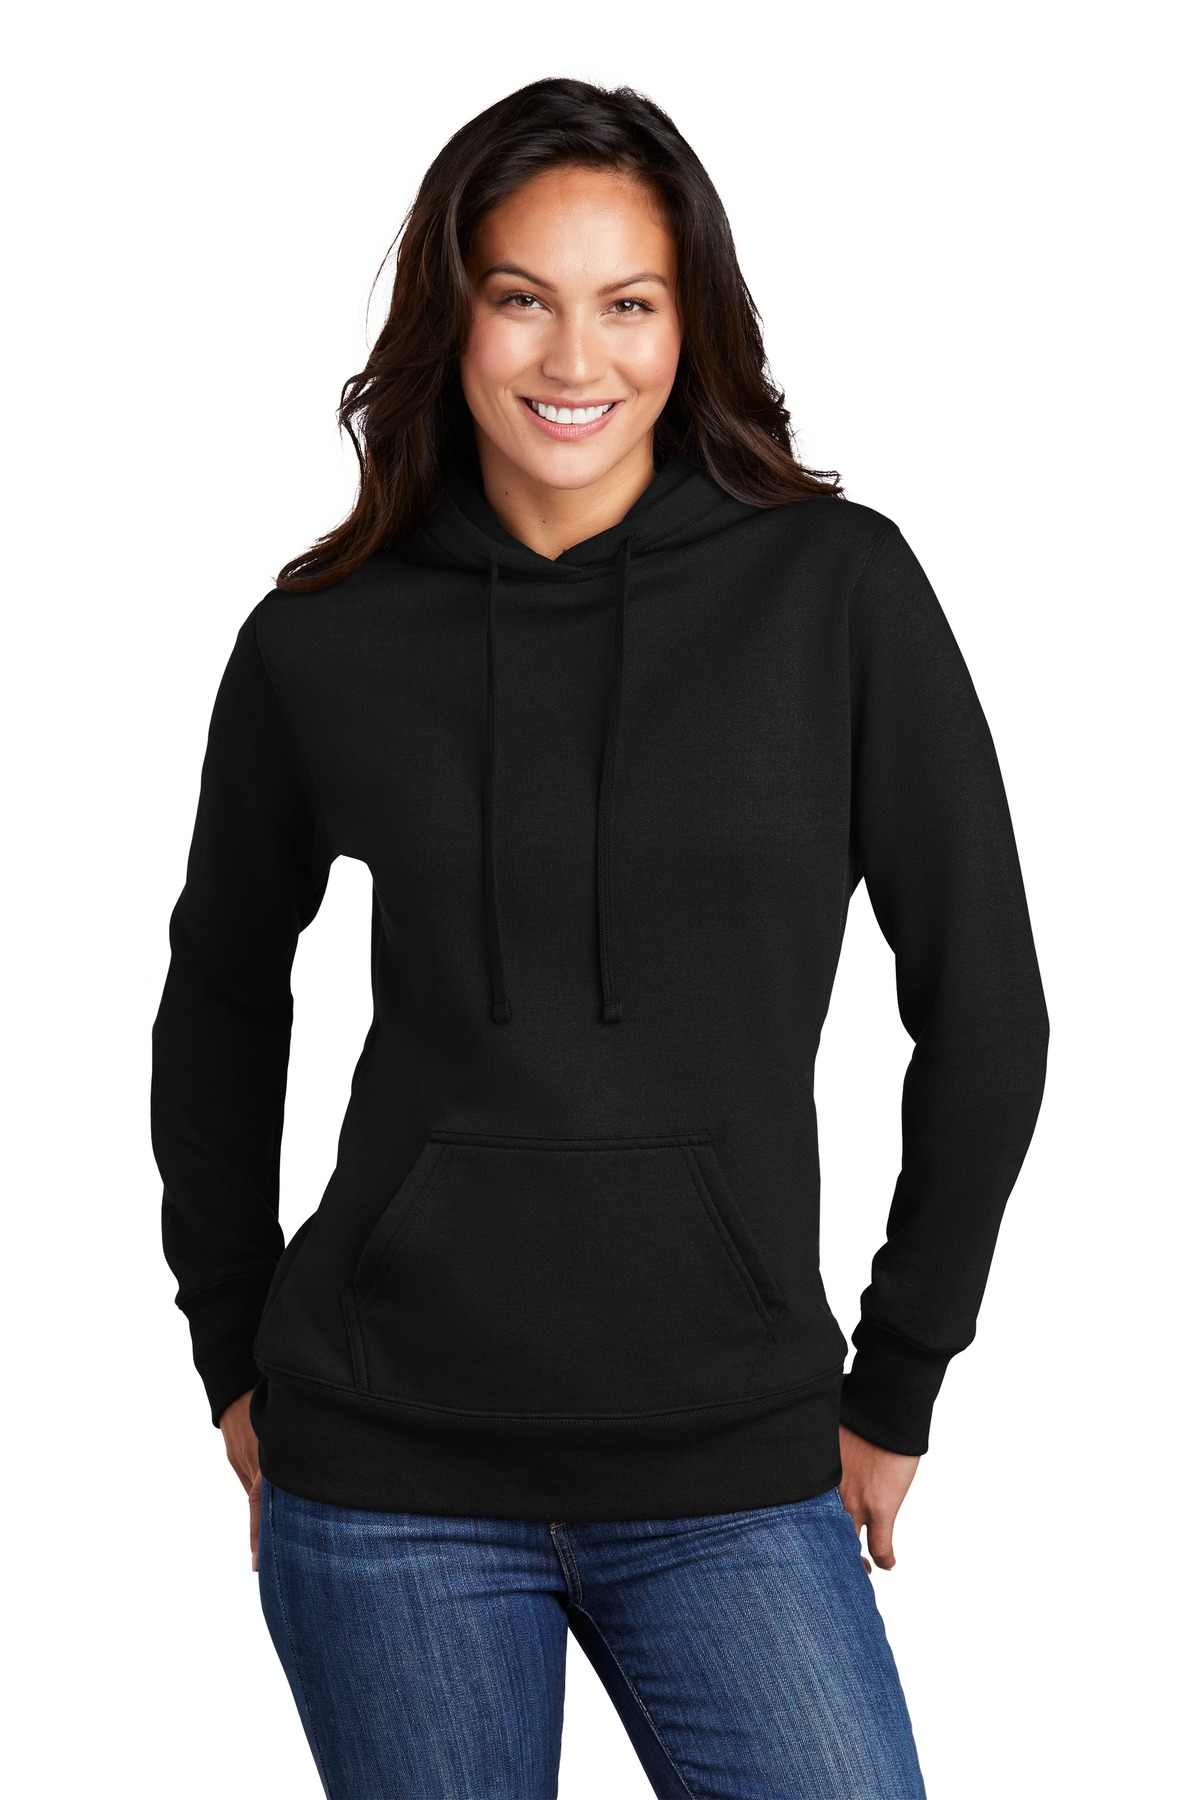 Port & Company  ®  Ladies Core Fleece Pullover Hooded Sweatshirt LPC78H - Jet Black